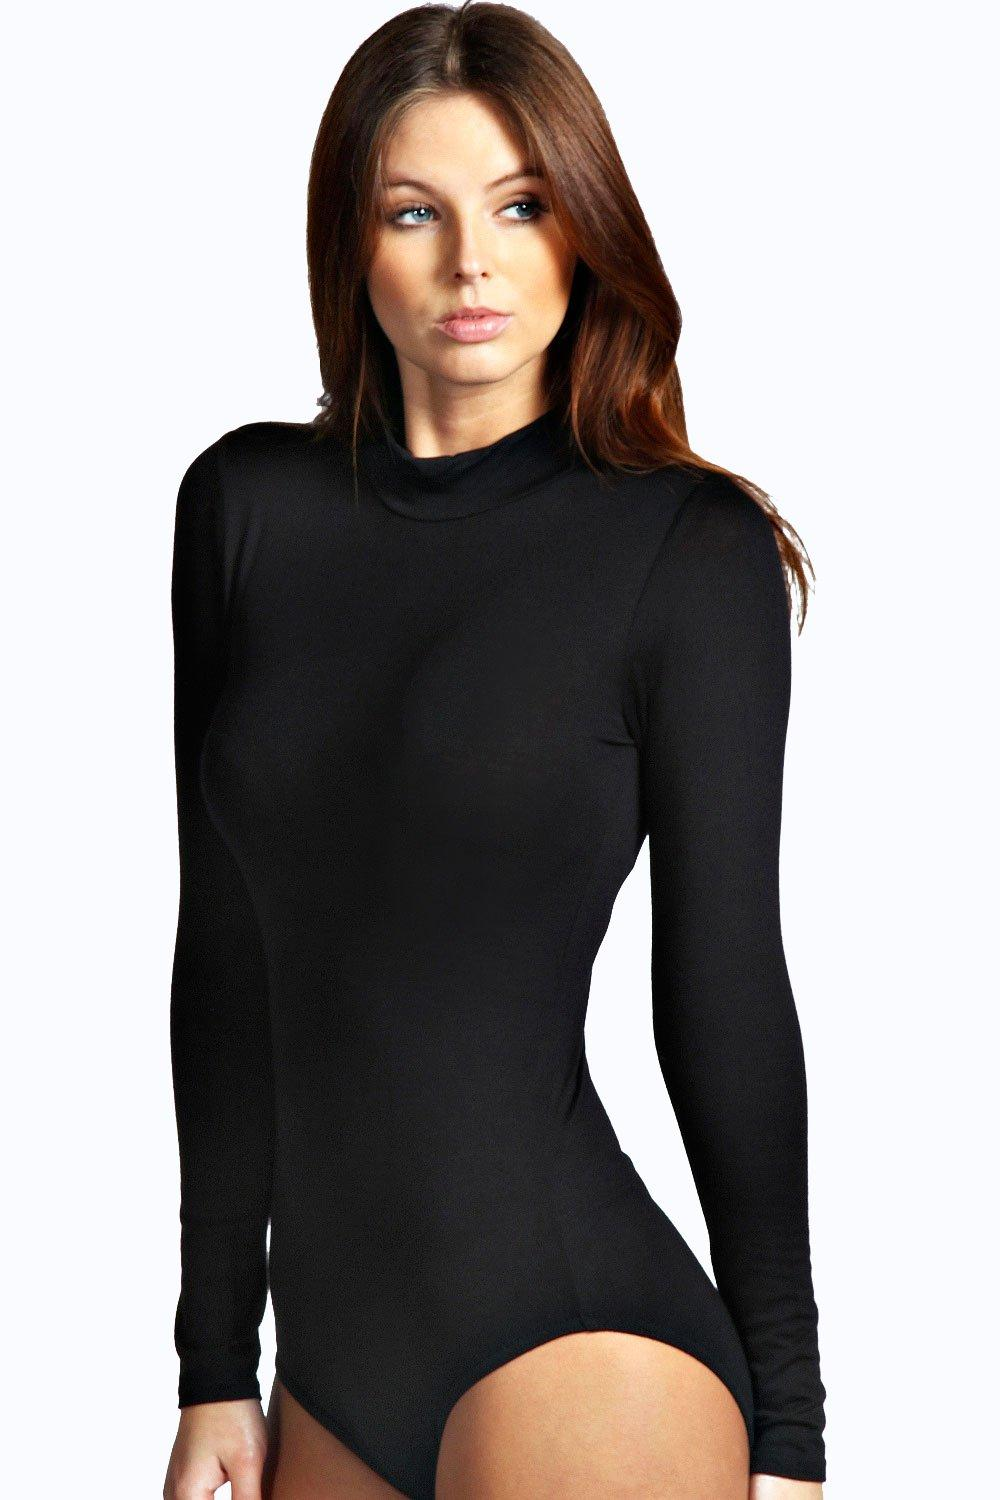 ae08419046 High Neck Long Sleeve Bodysuit. Hover to zoom